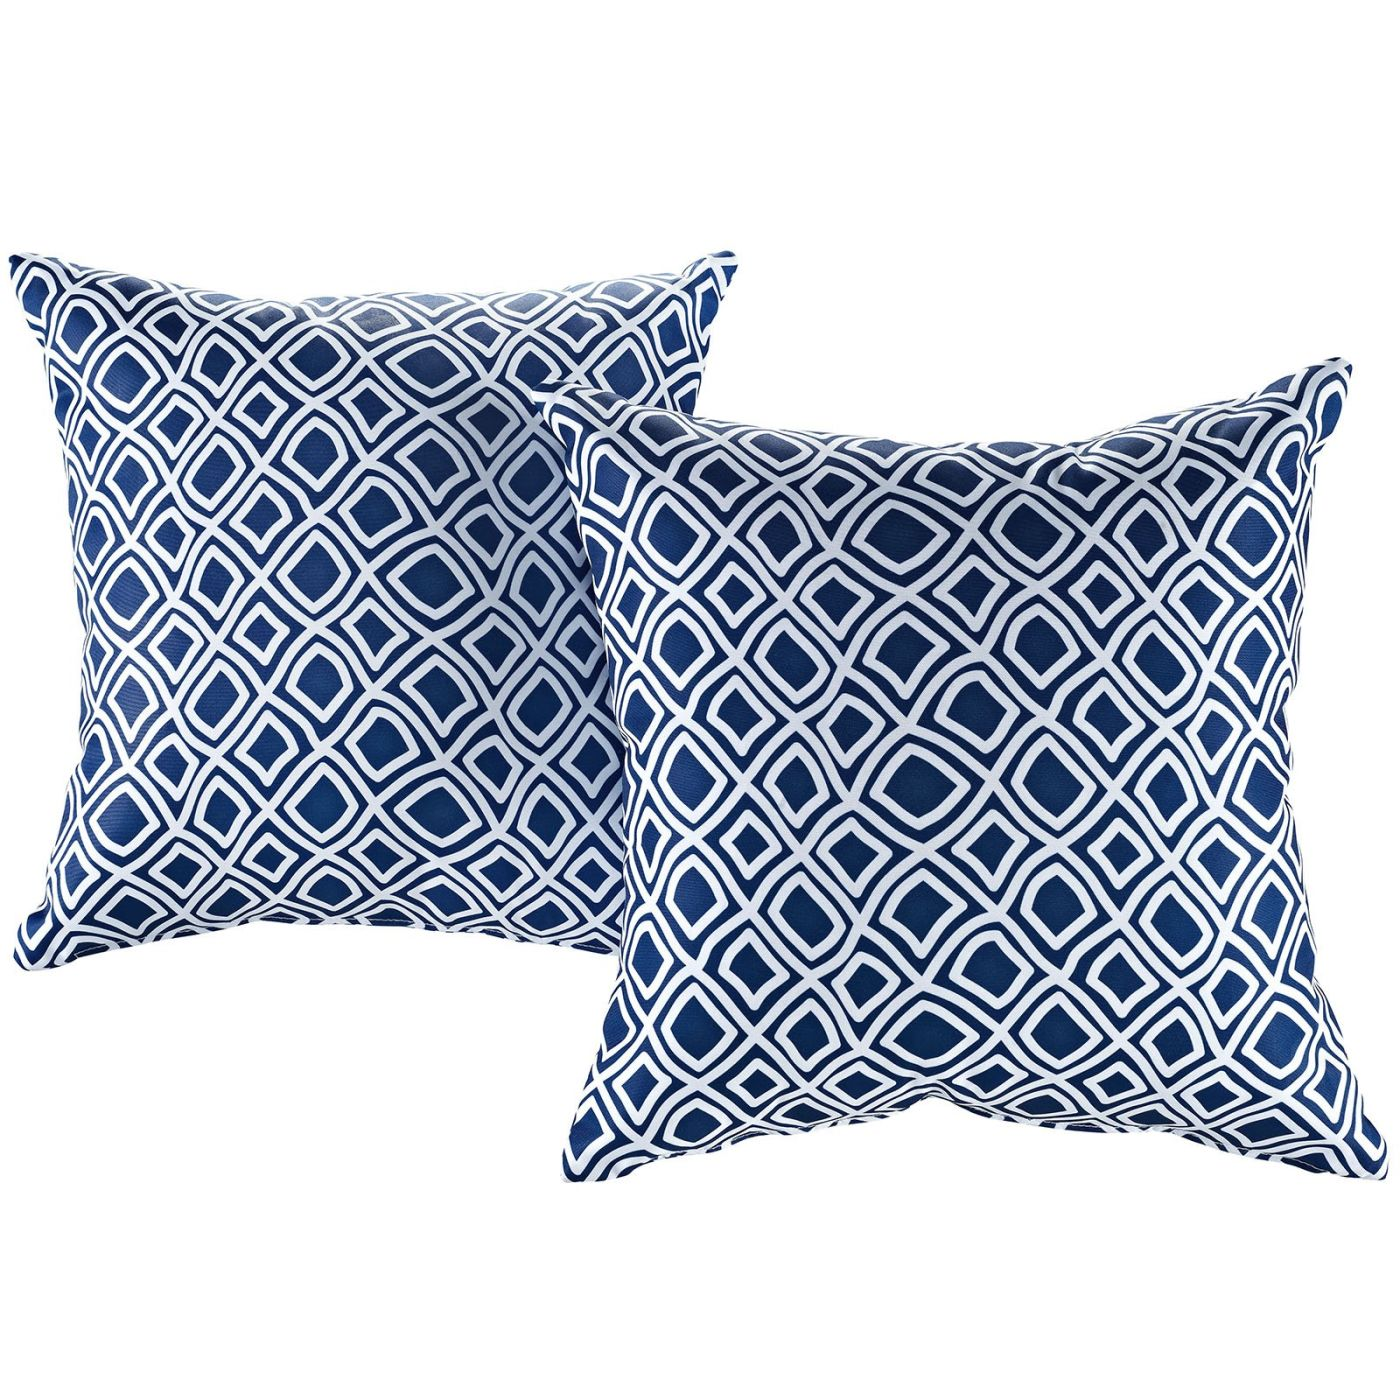 Modway Modway Two Piece Outdoor Patio Pillow Set EEI 2401 STR